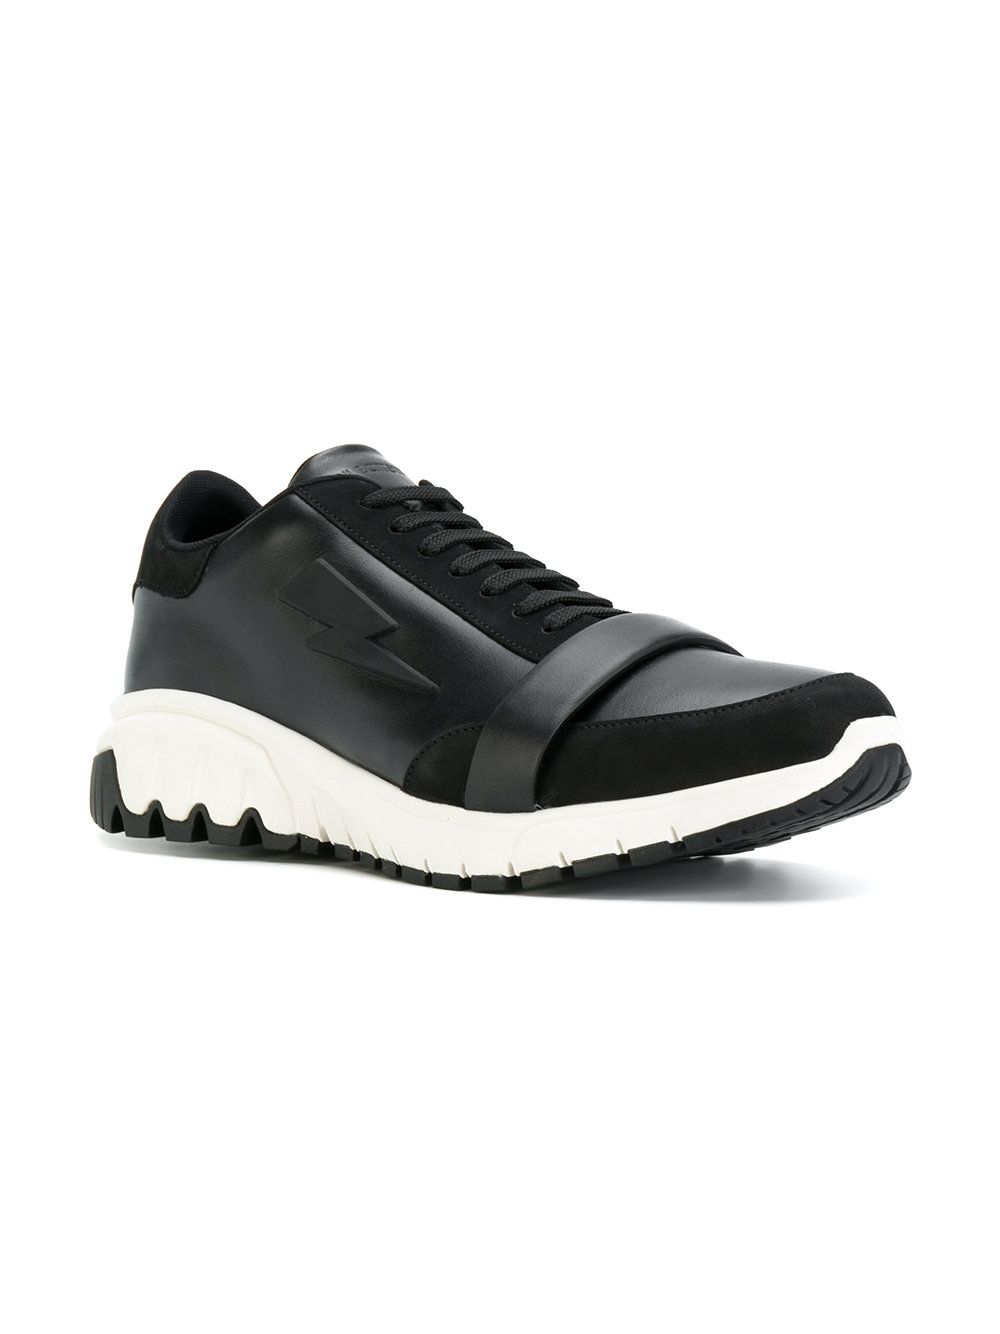 NEIL BARRETT  runner sneakers